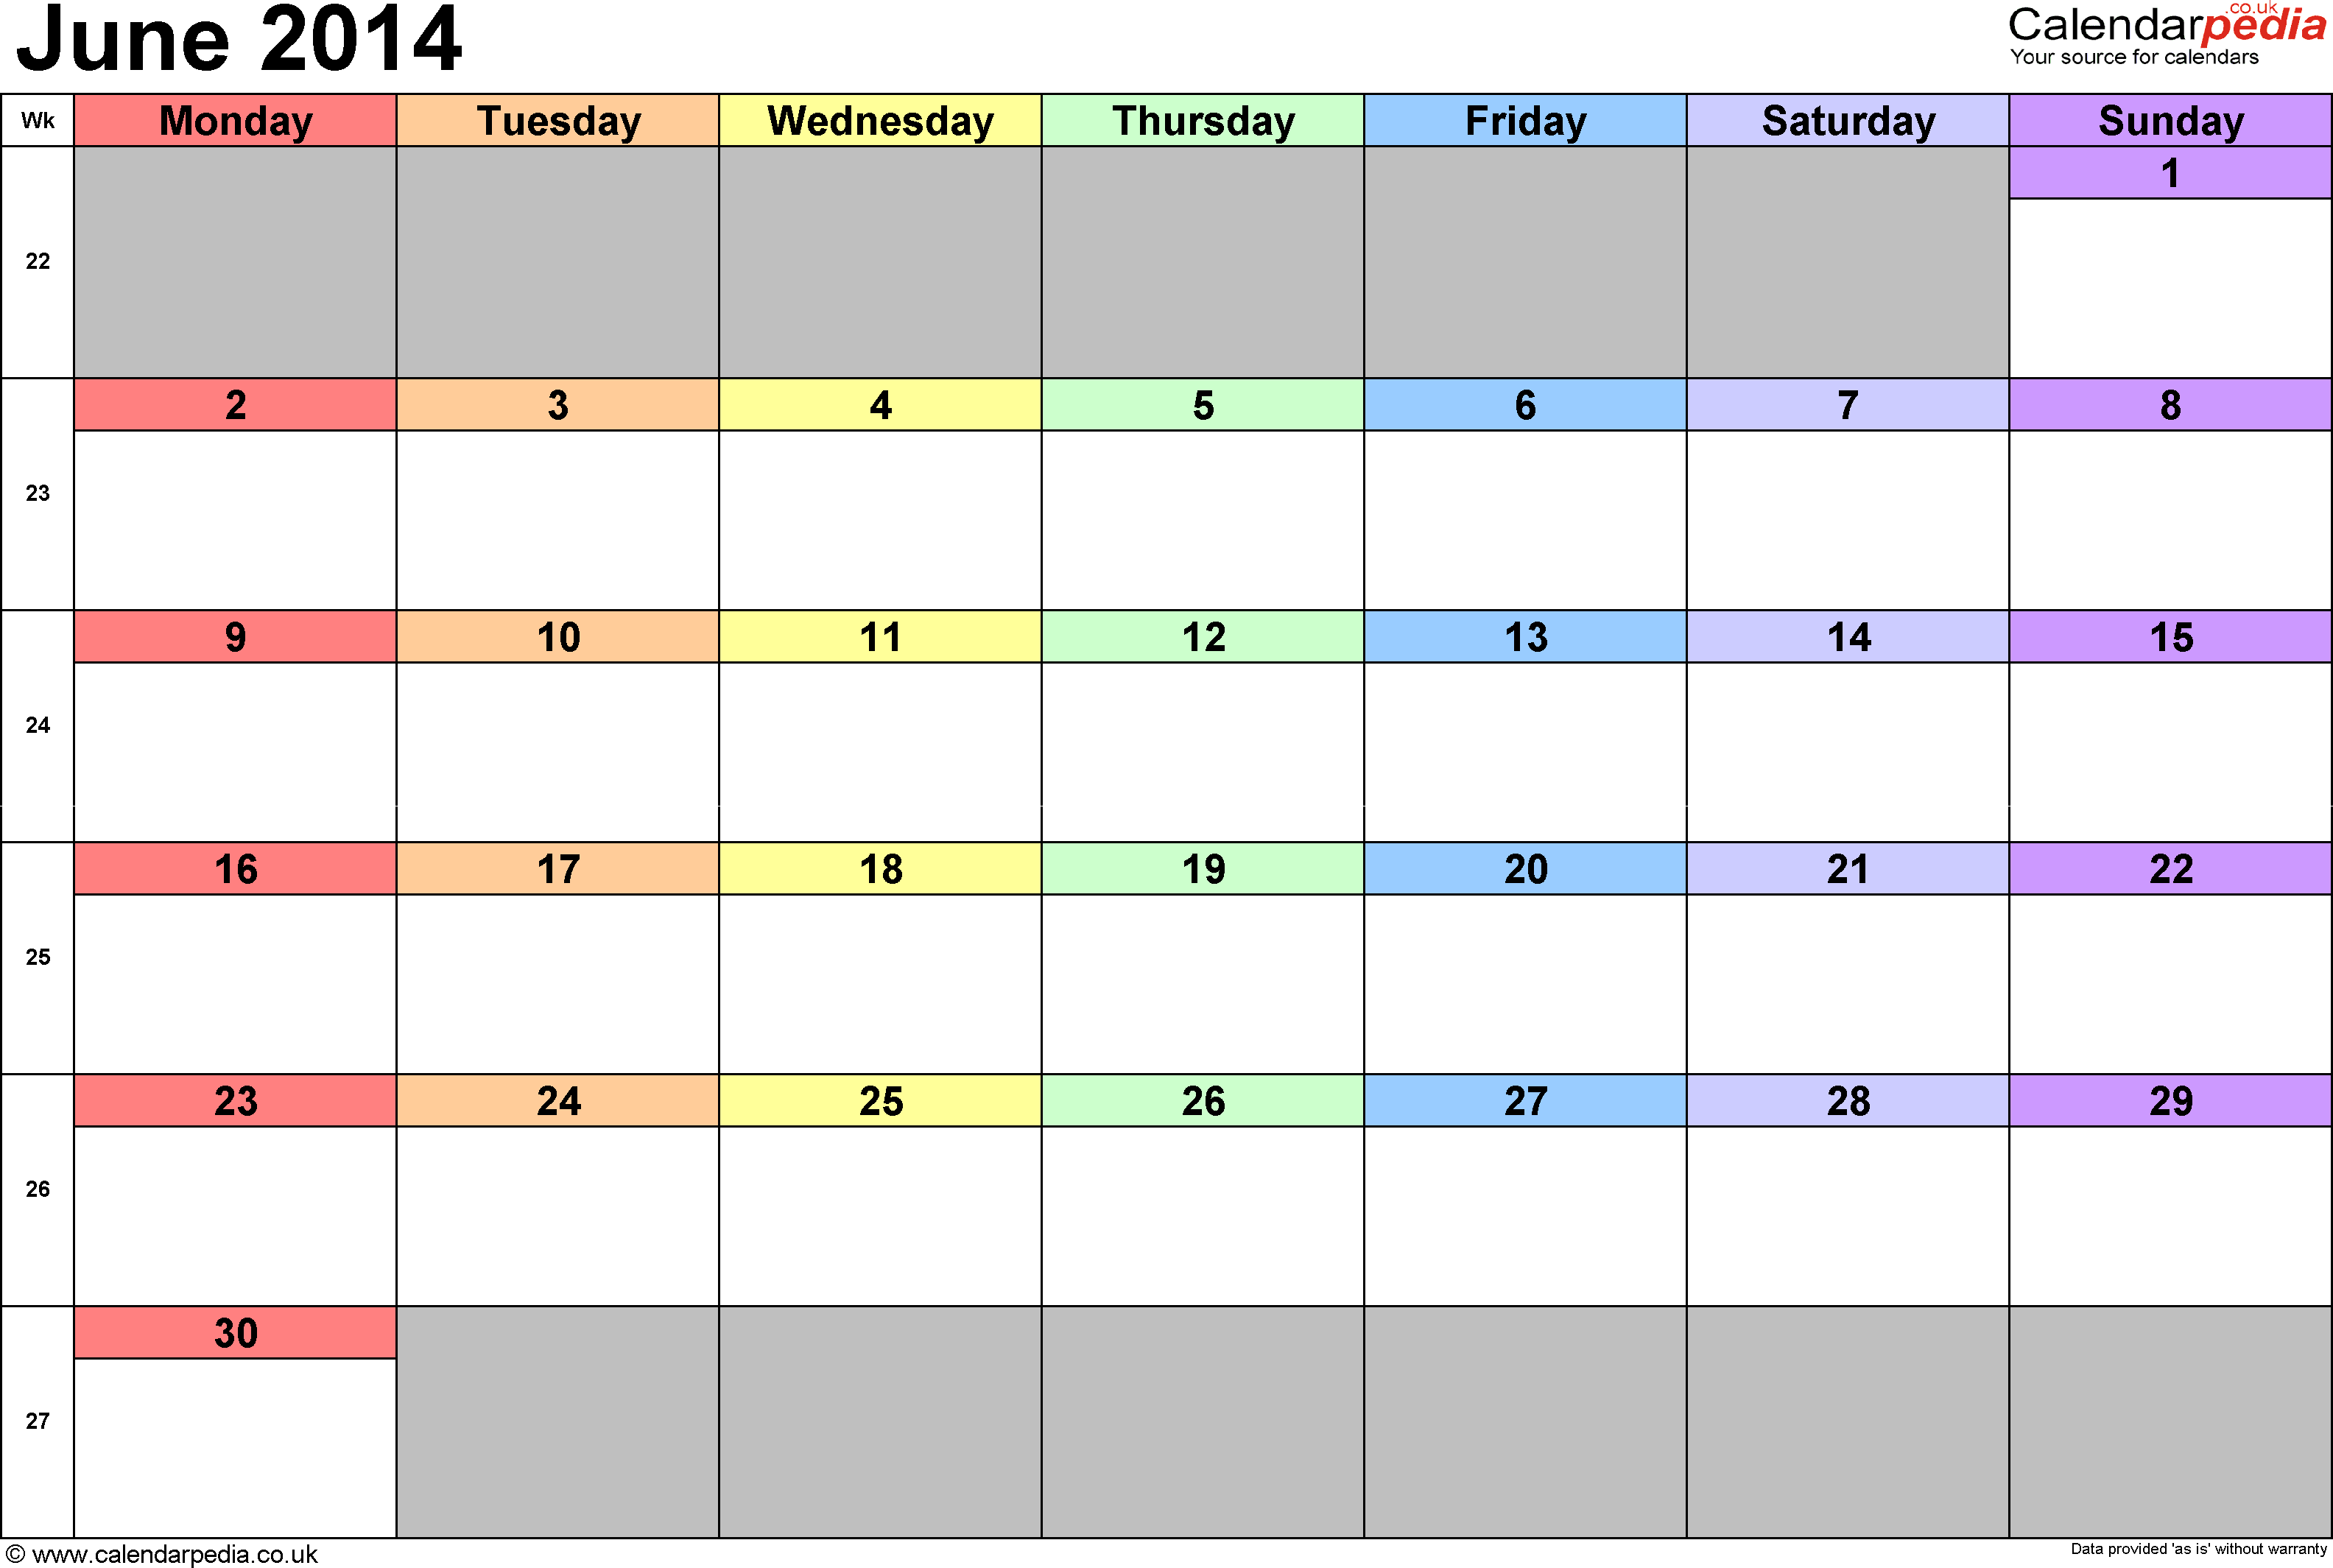 Calendar June 2014, landscape orientation, 1 page, with UK bank holidays and week numbers